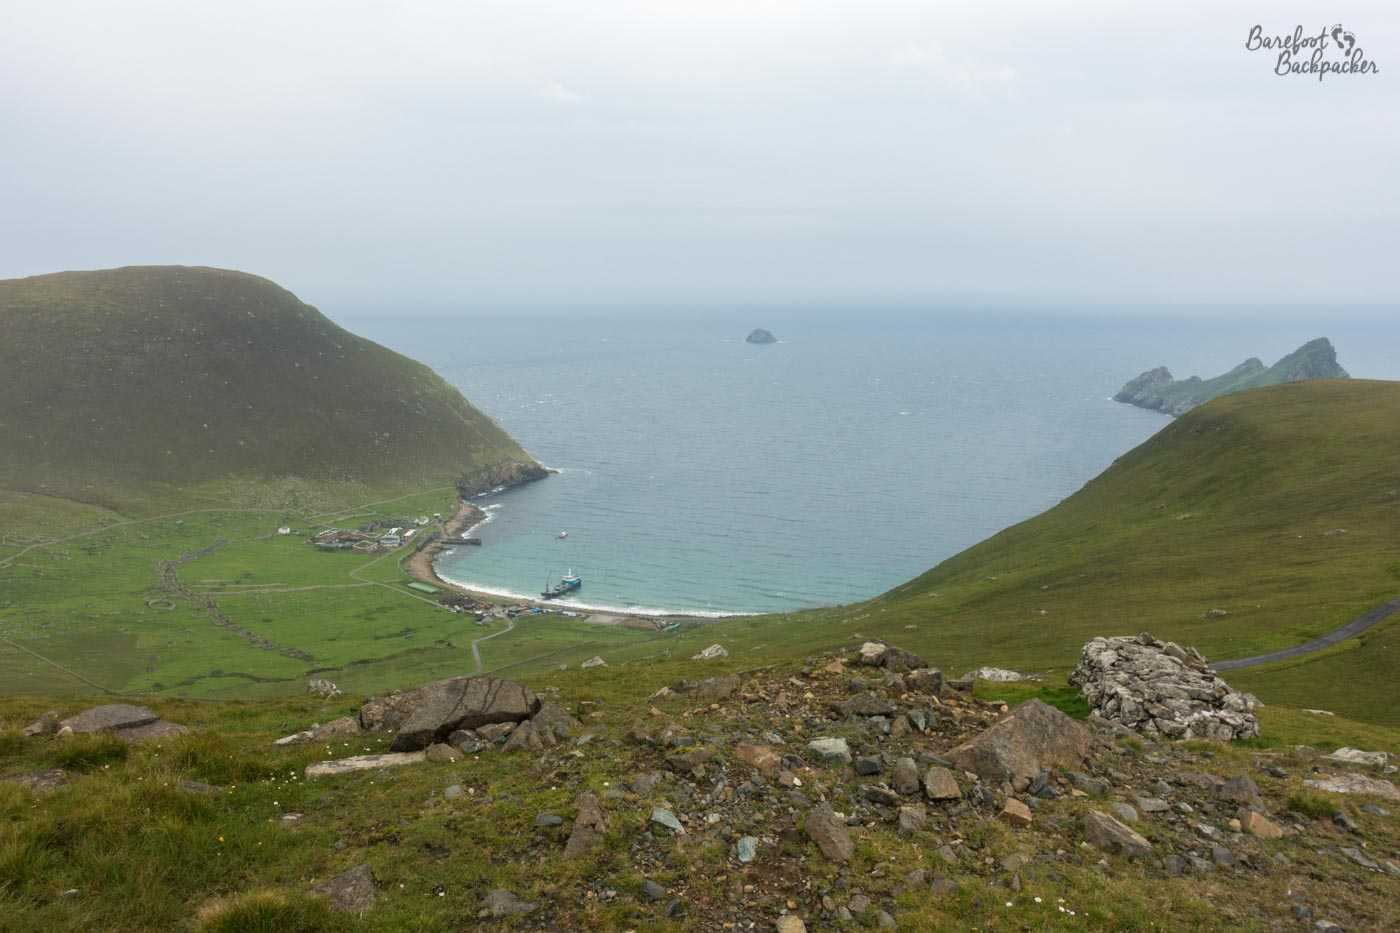 Another view of the harbour on Hirta, as seen from another of the hills that overlook the settlement. The bay is curved, and the lone ship rests in the middle of the calmed natural harbour.